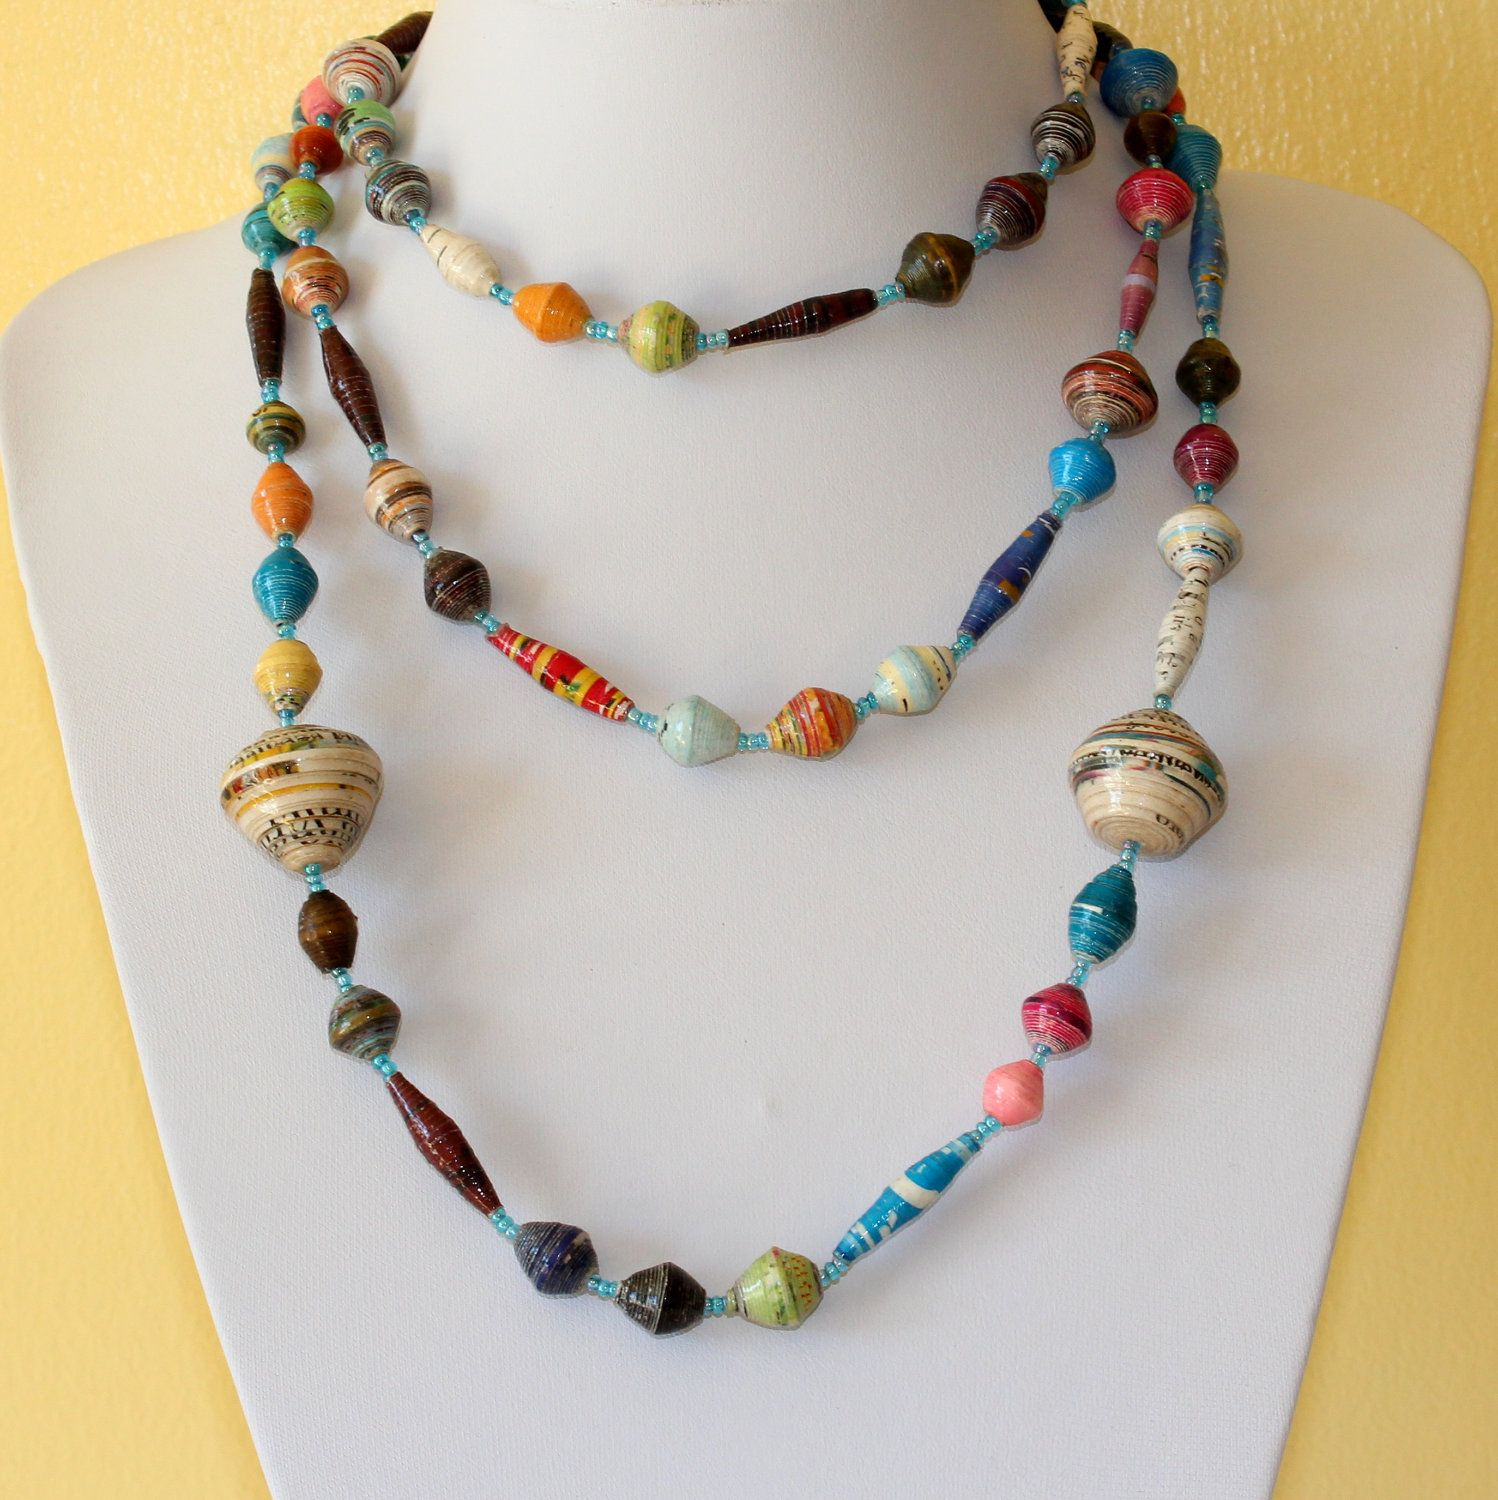 Rolled Paper Jewelry African Design Necklace Hand Rolled Paper Beads Paper Mache Multi Paper Jewelry Paper Beads Handmade Jewelry